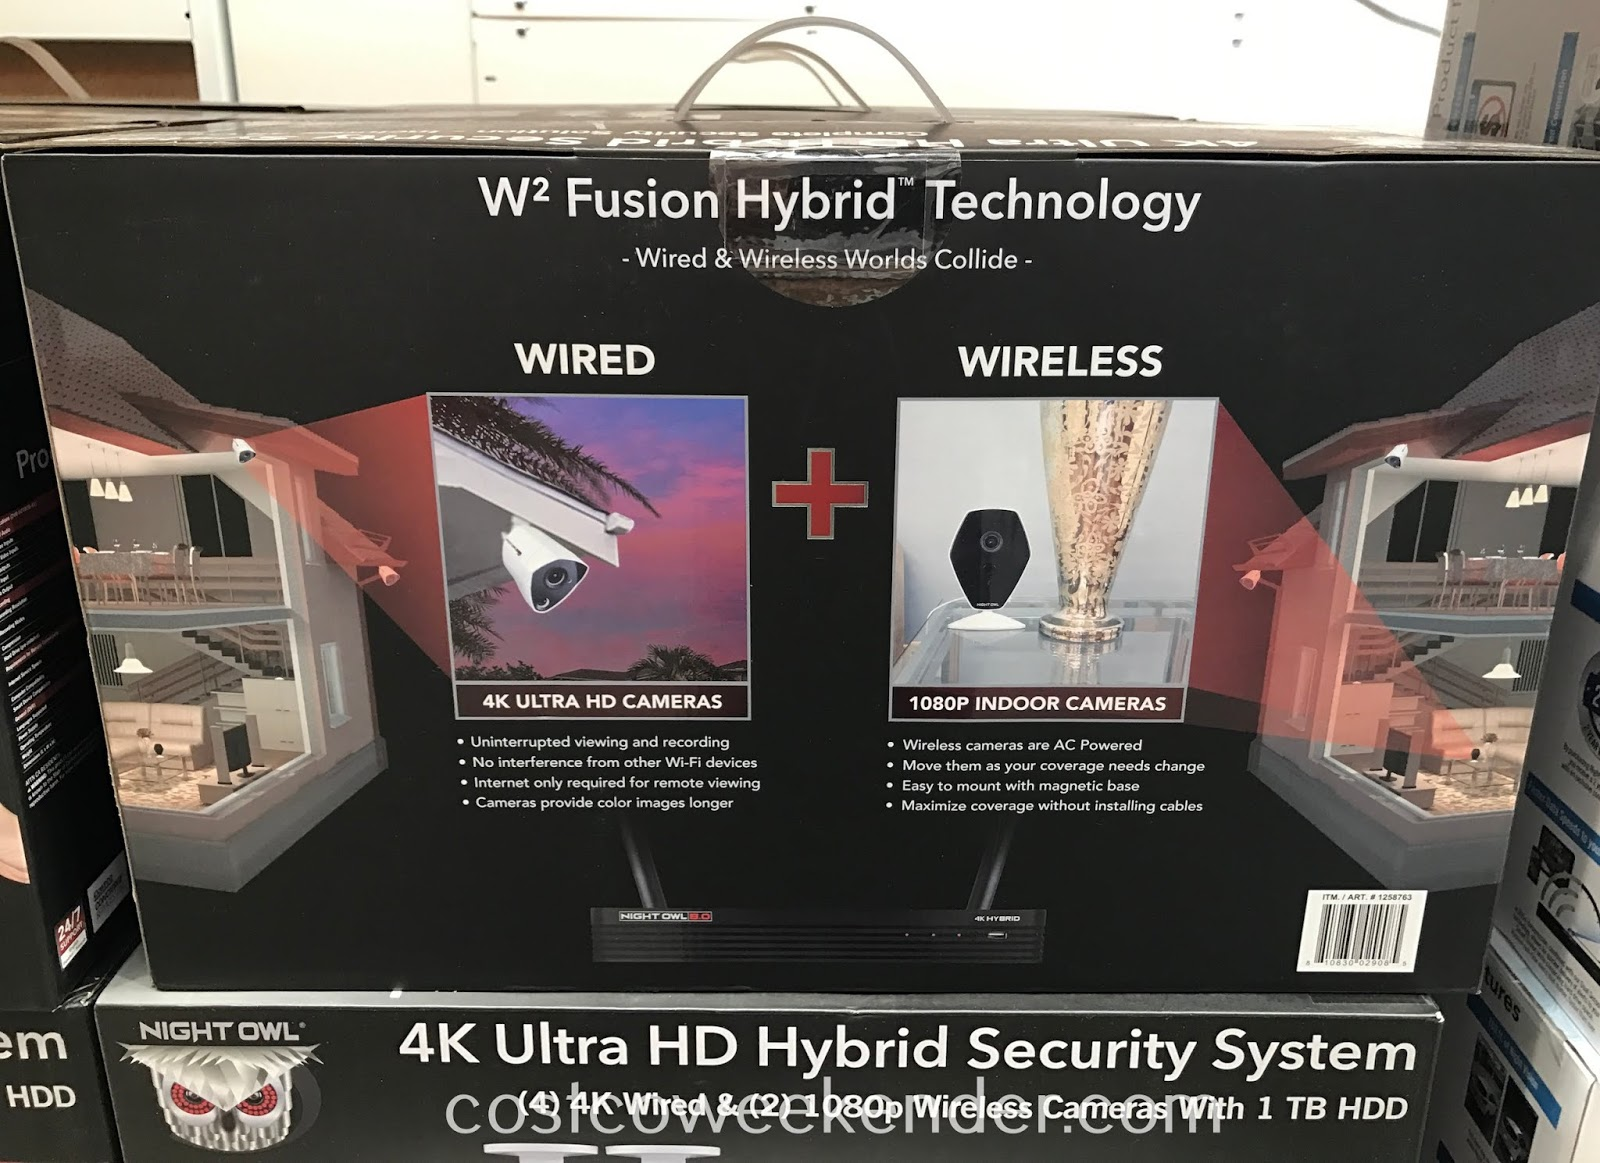 Costco 1258763 - Make your home and family safer with the Night Owl 4K Ultra HD Hybrid Security System